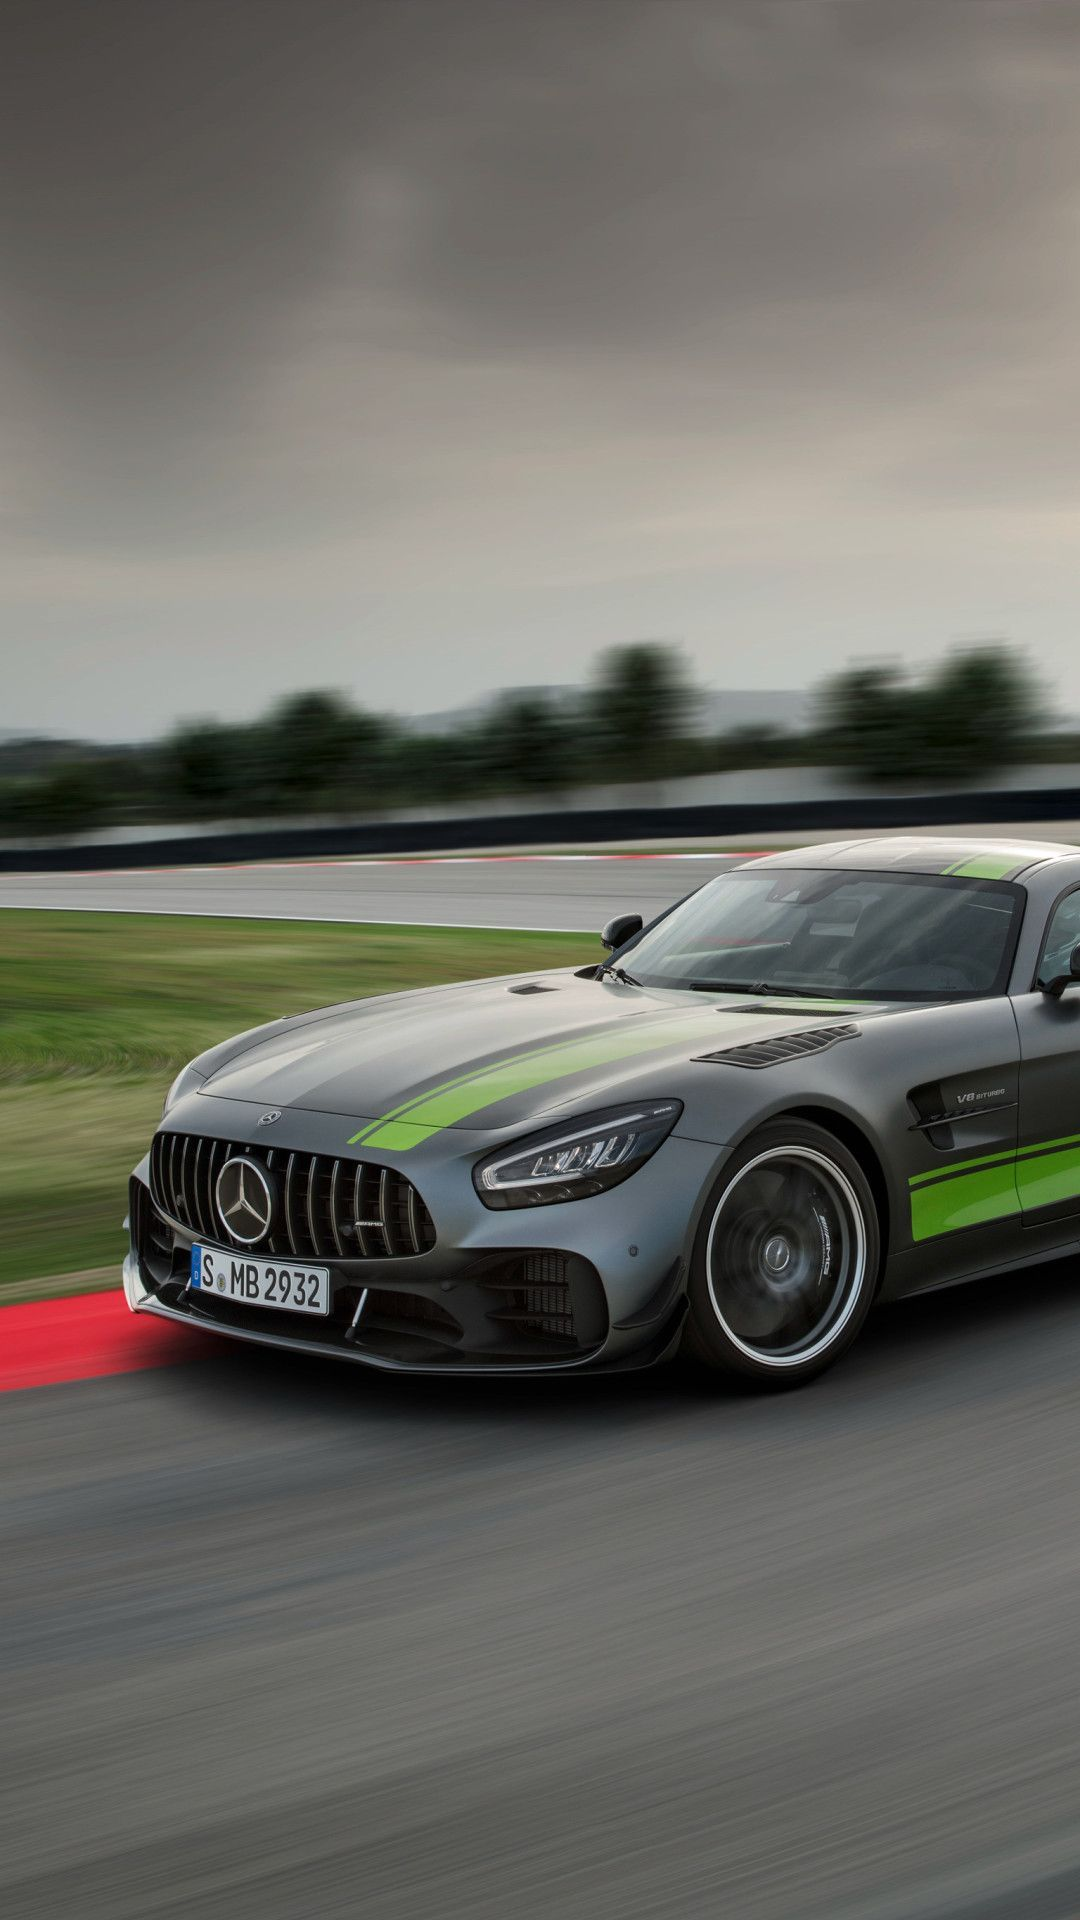 Mercedes Amg Gt R Pro 2019 4k Mobile Wal Wallpapers In 2020